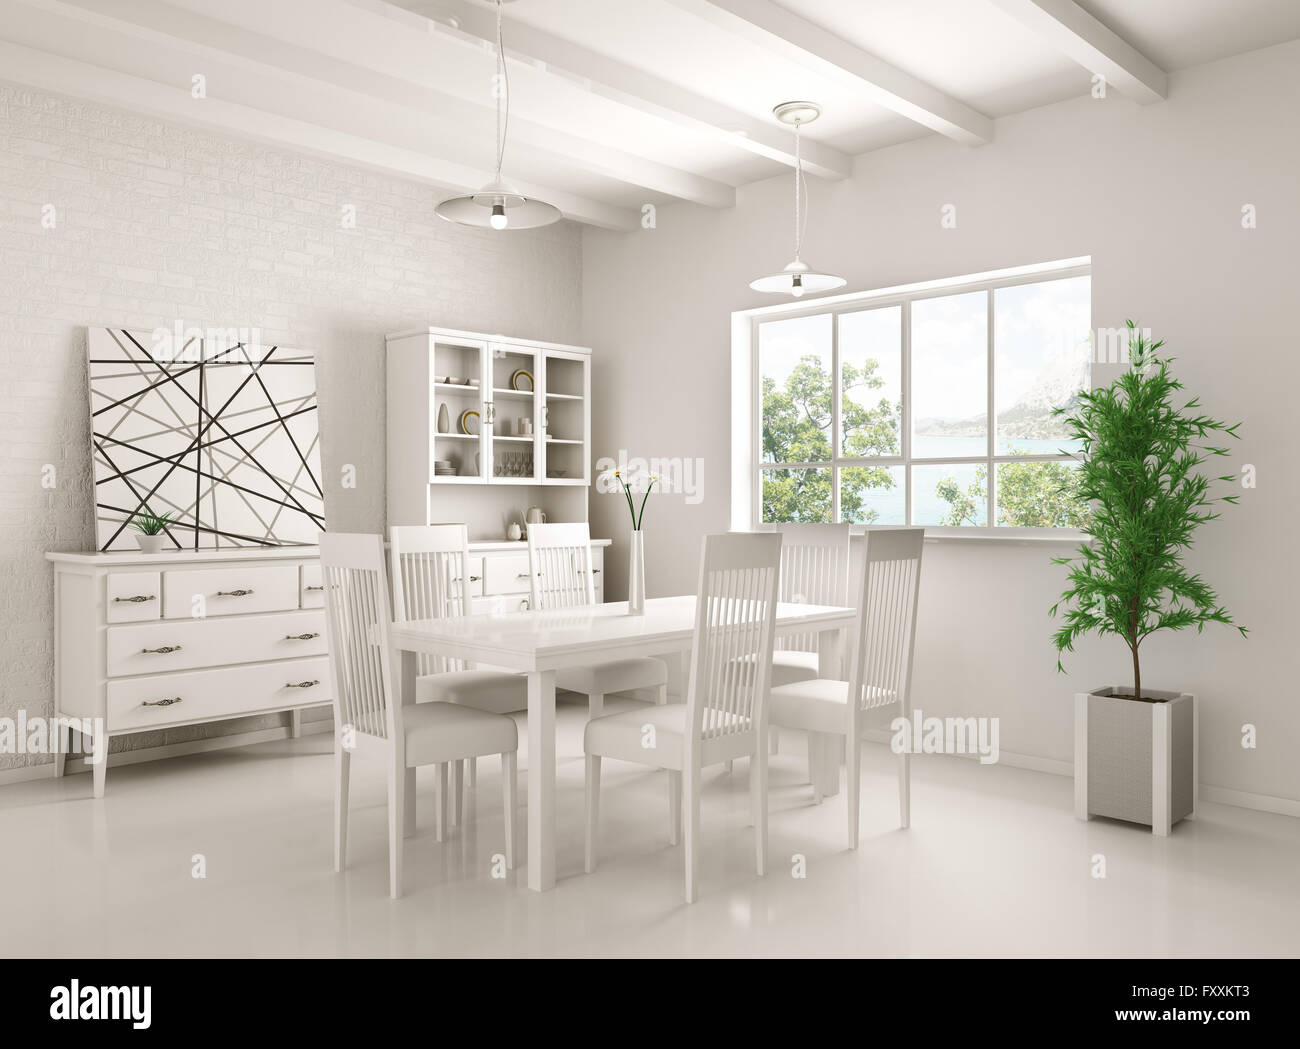 Interior of white classic dining room 3d rendering - Stock Image